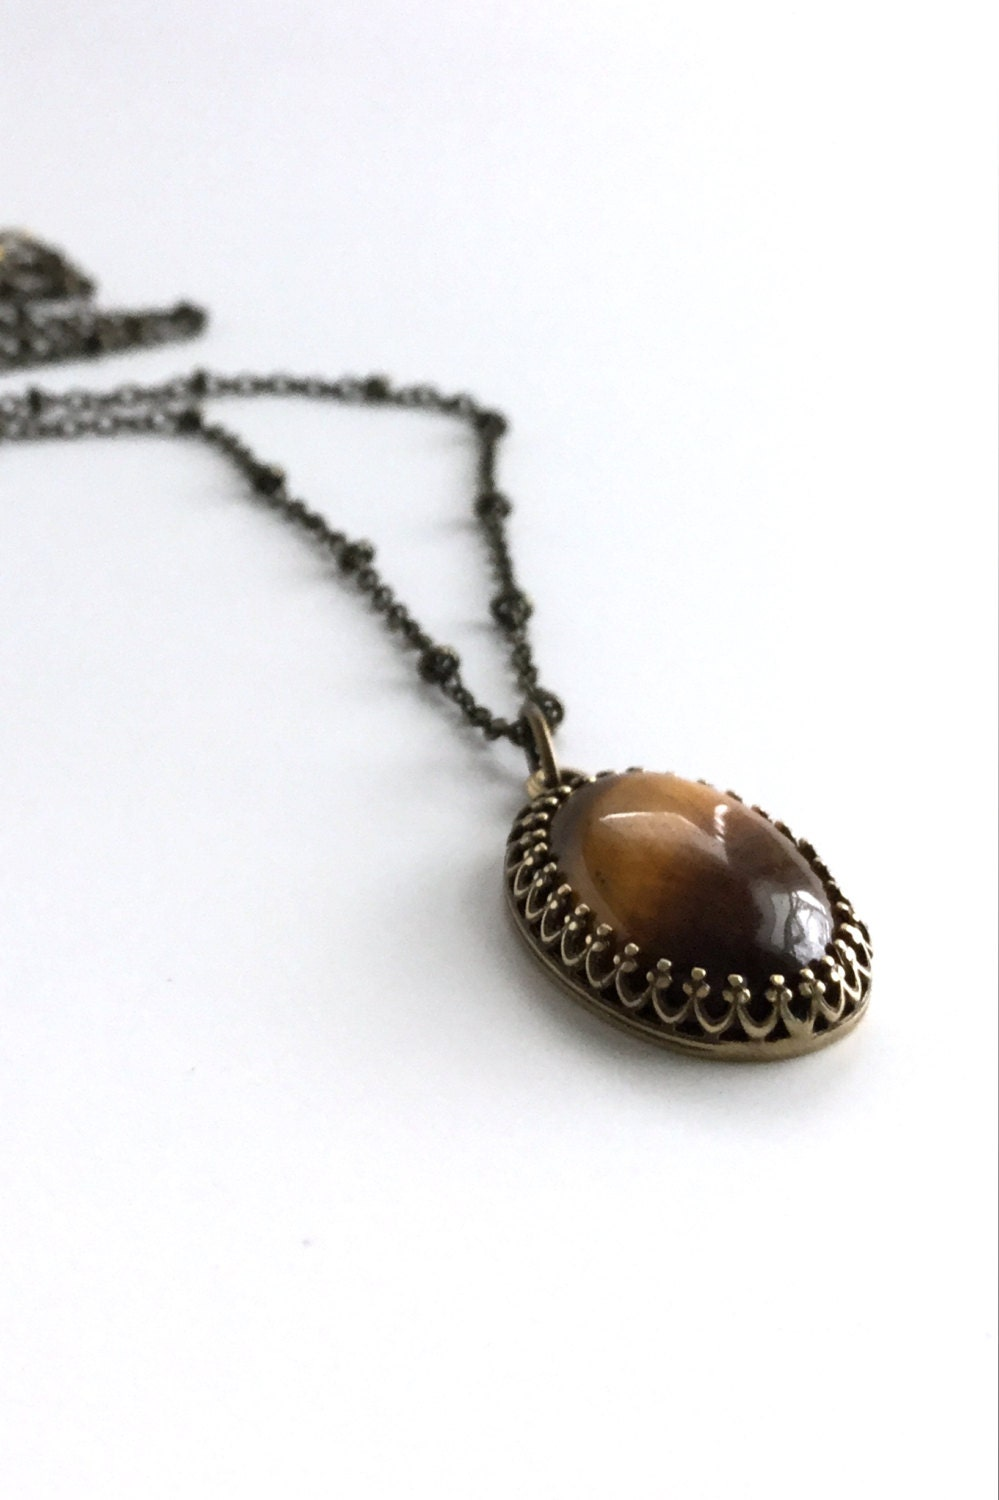 Natural Stone Jewelry : Tiger s eye necklace oval natural stone pendant long